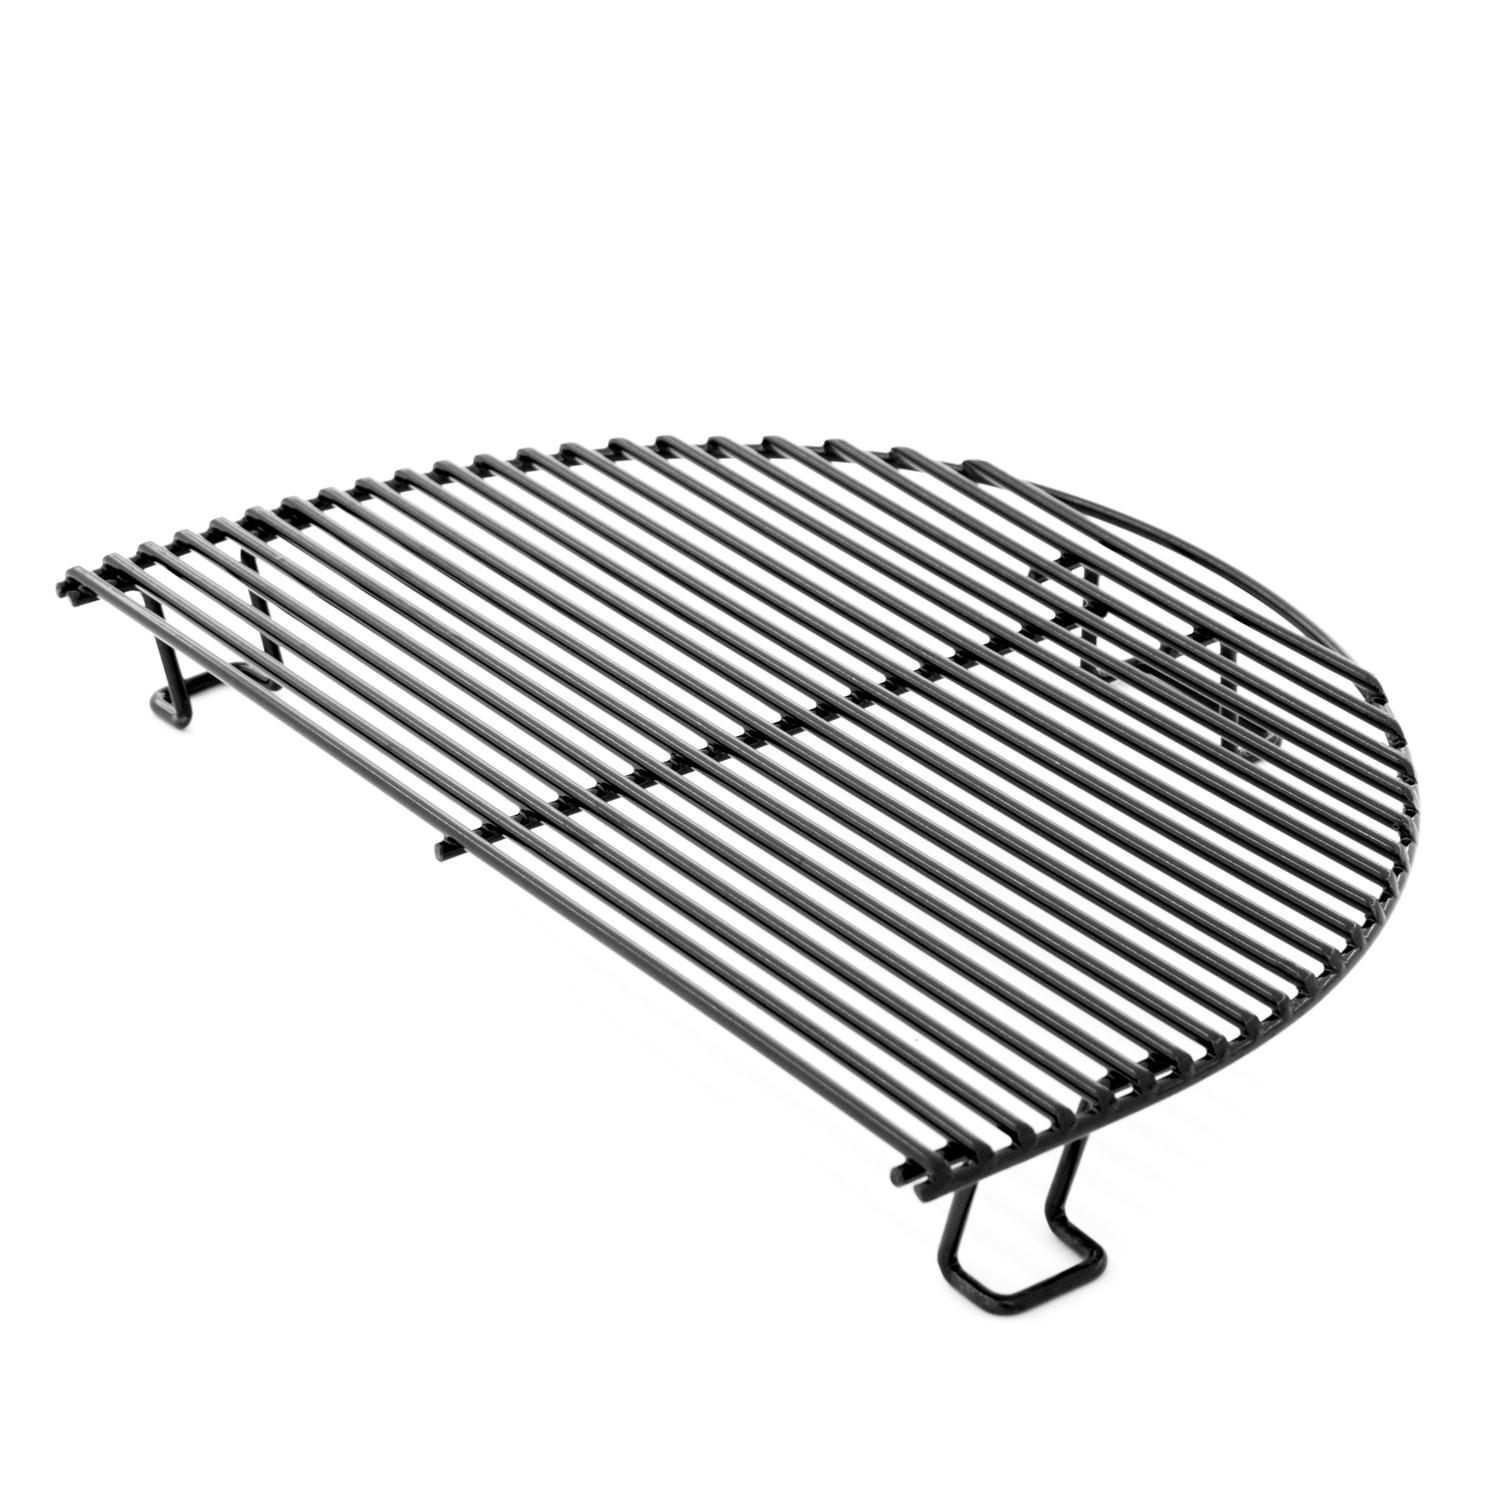 Primo Porcelain Half Rack Cooking Grate For Oval Xl